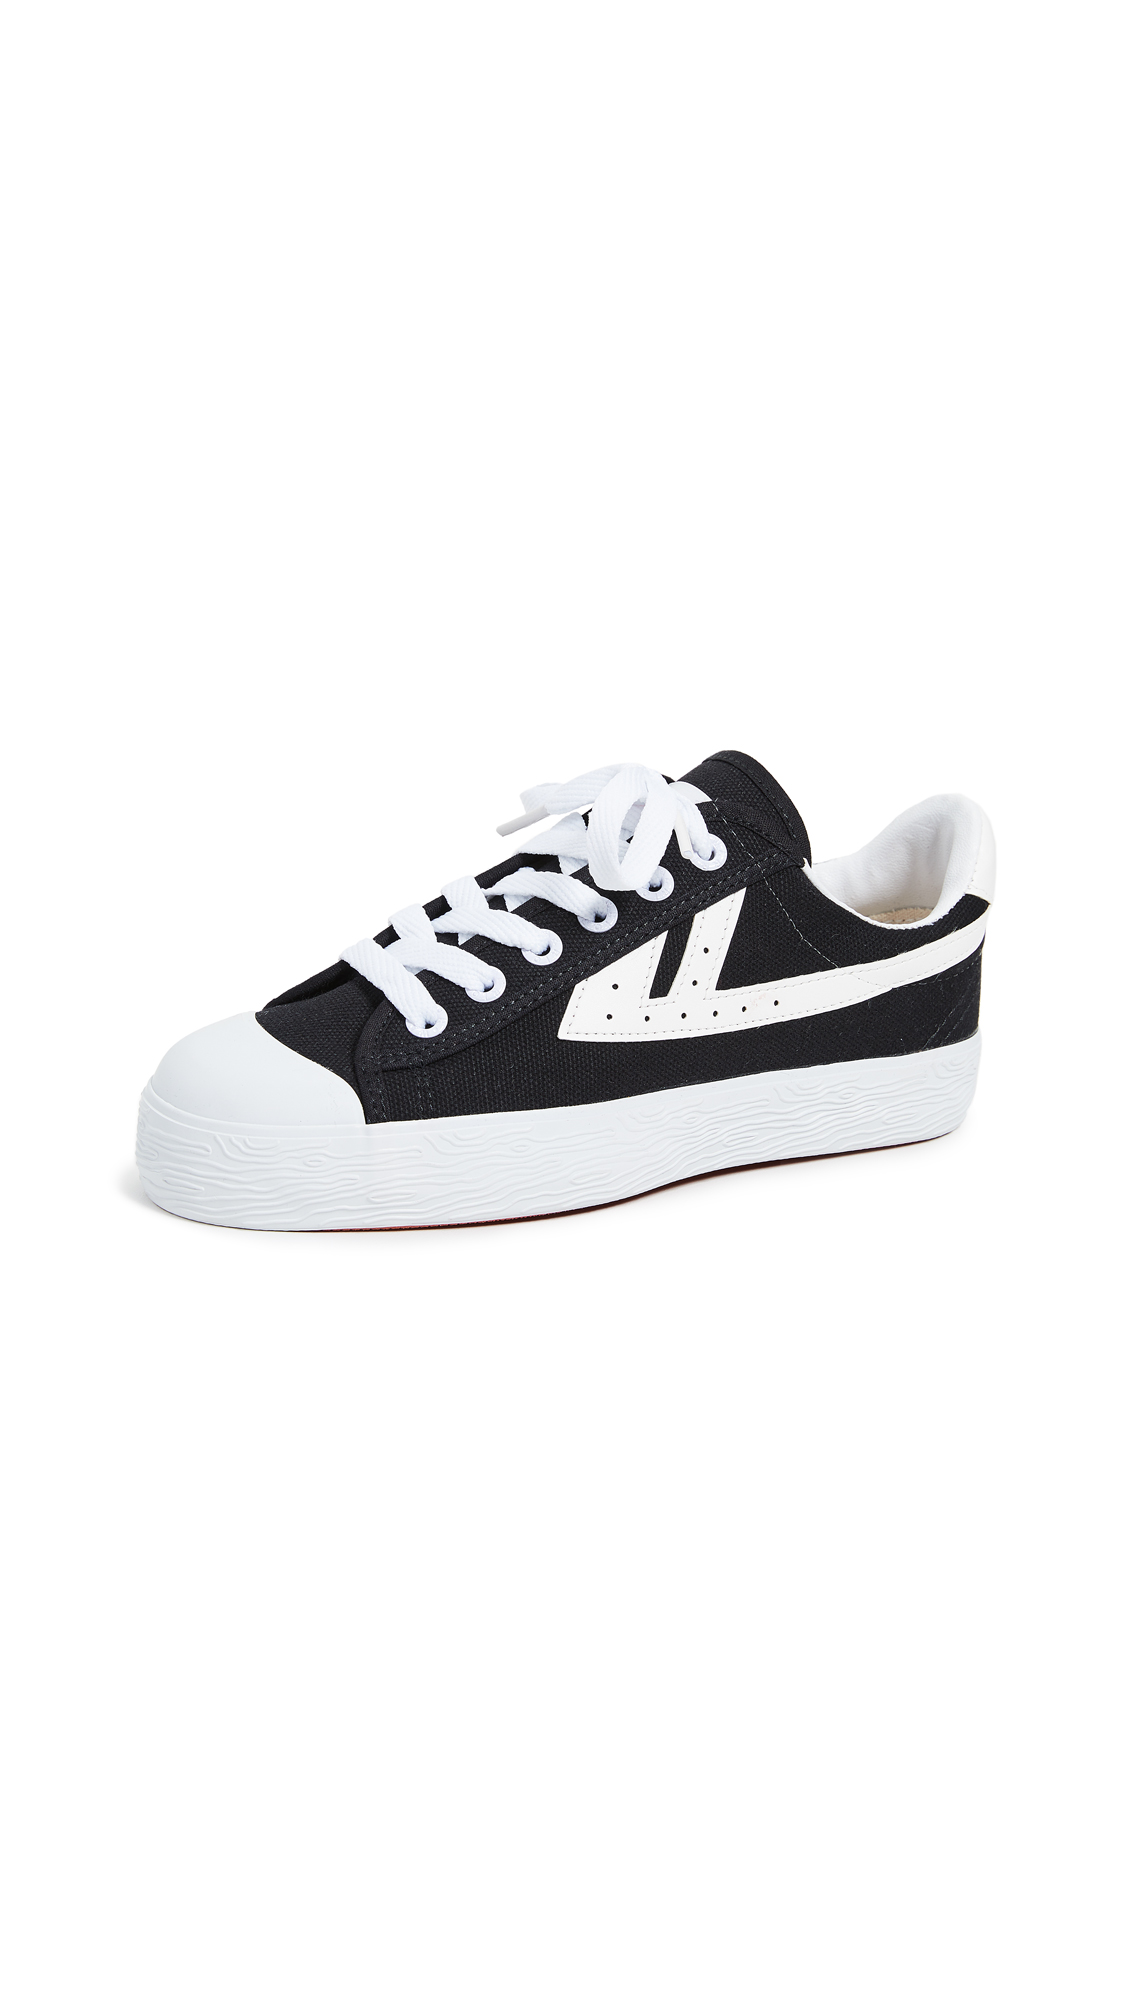 WOS33 Classic Sneakers - Black/White